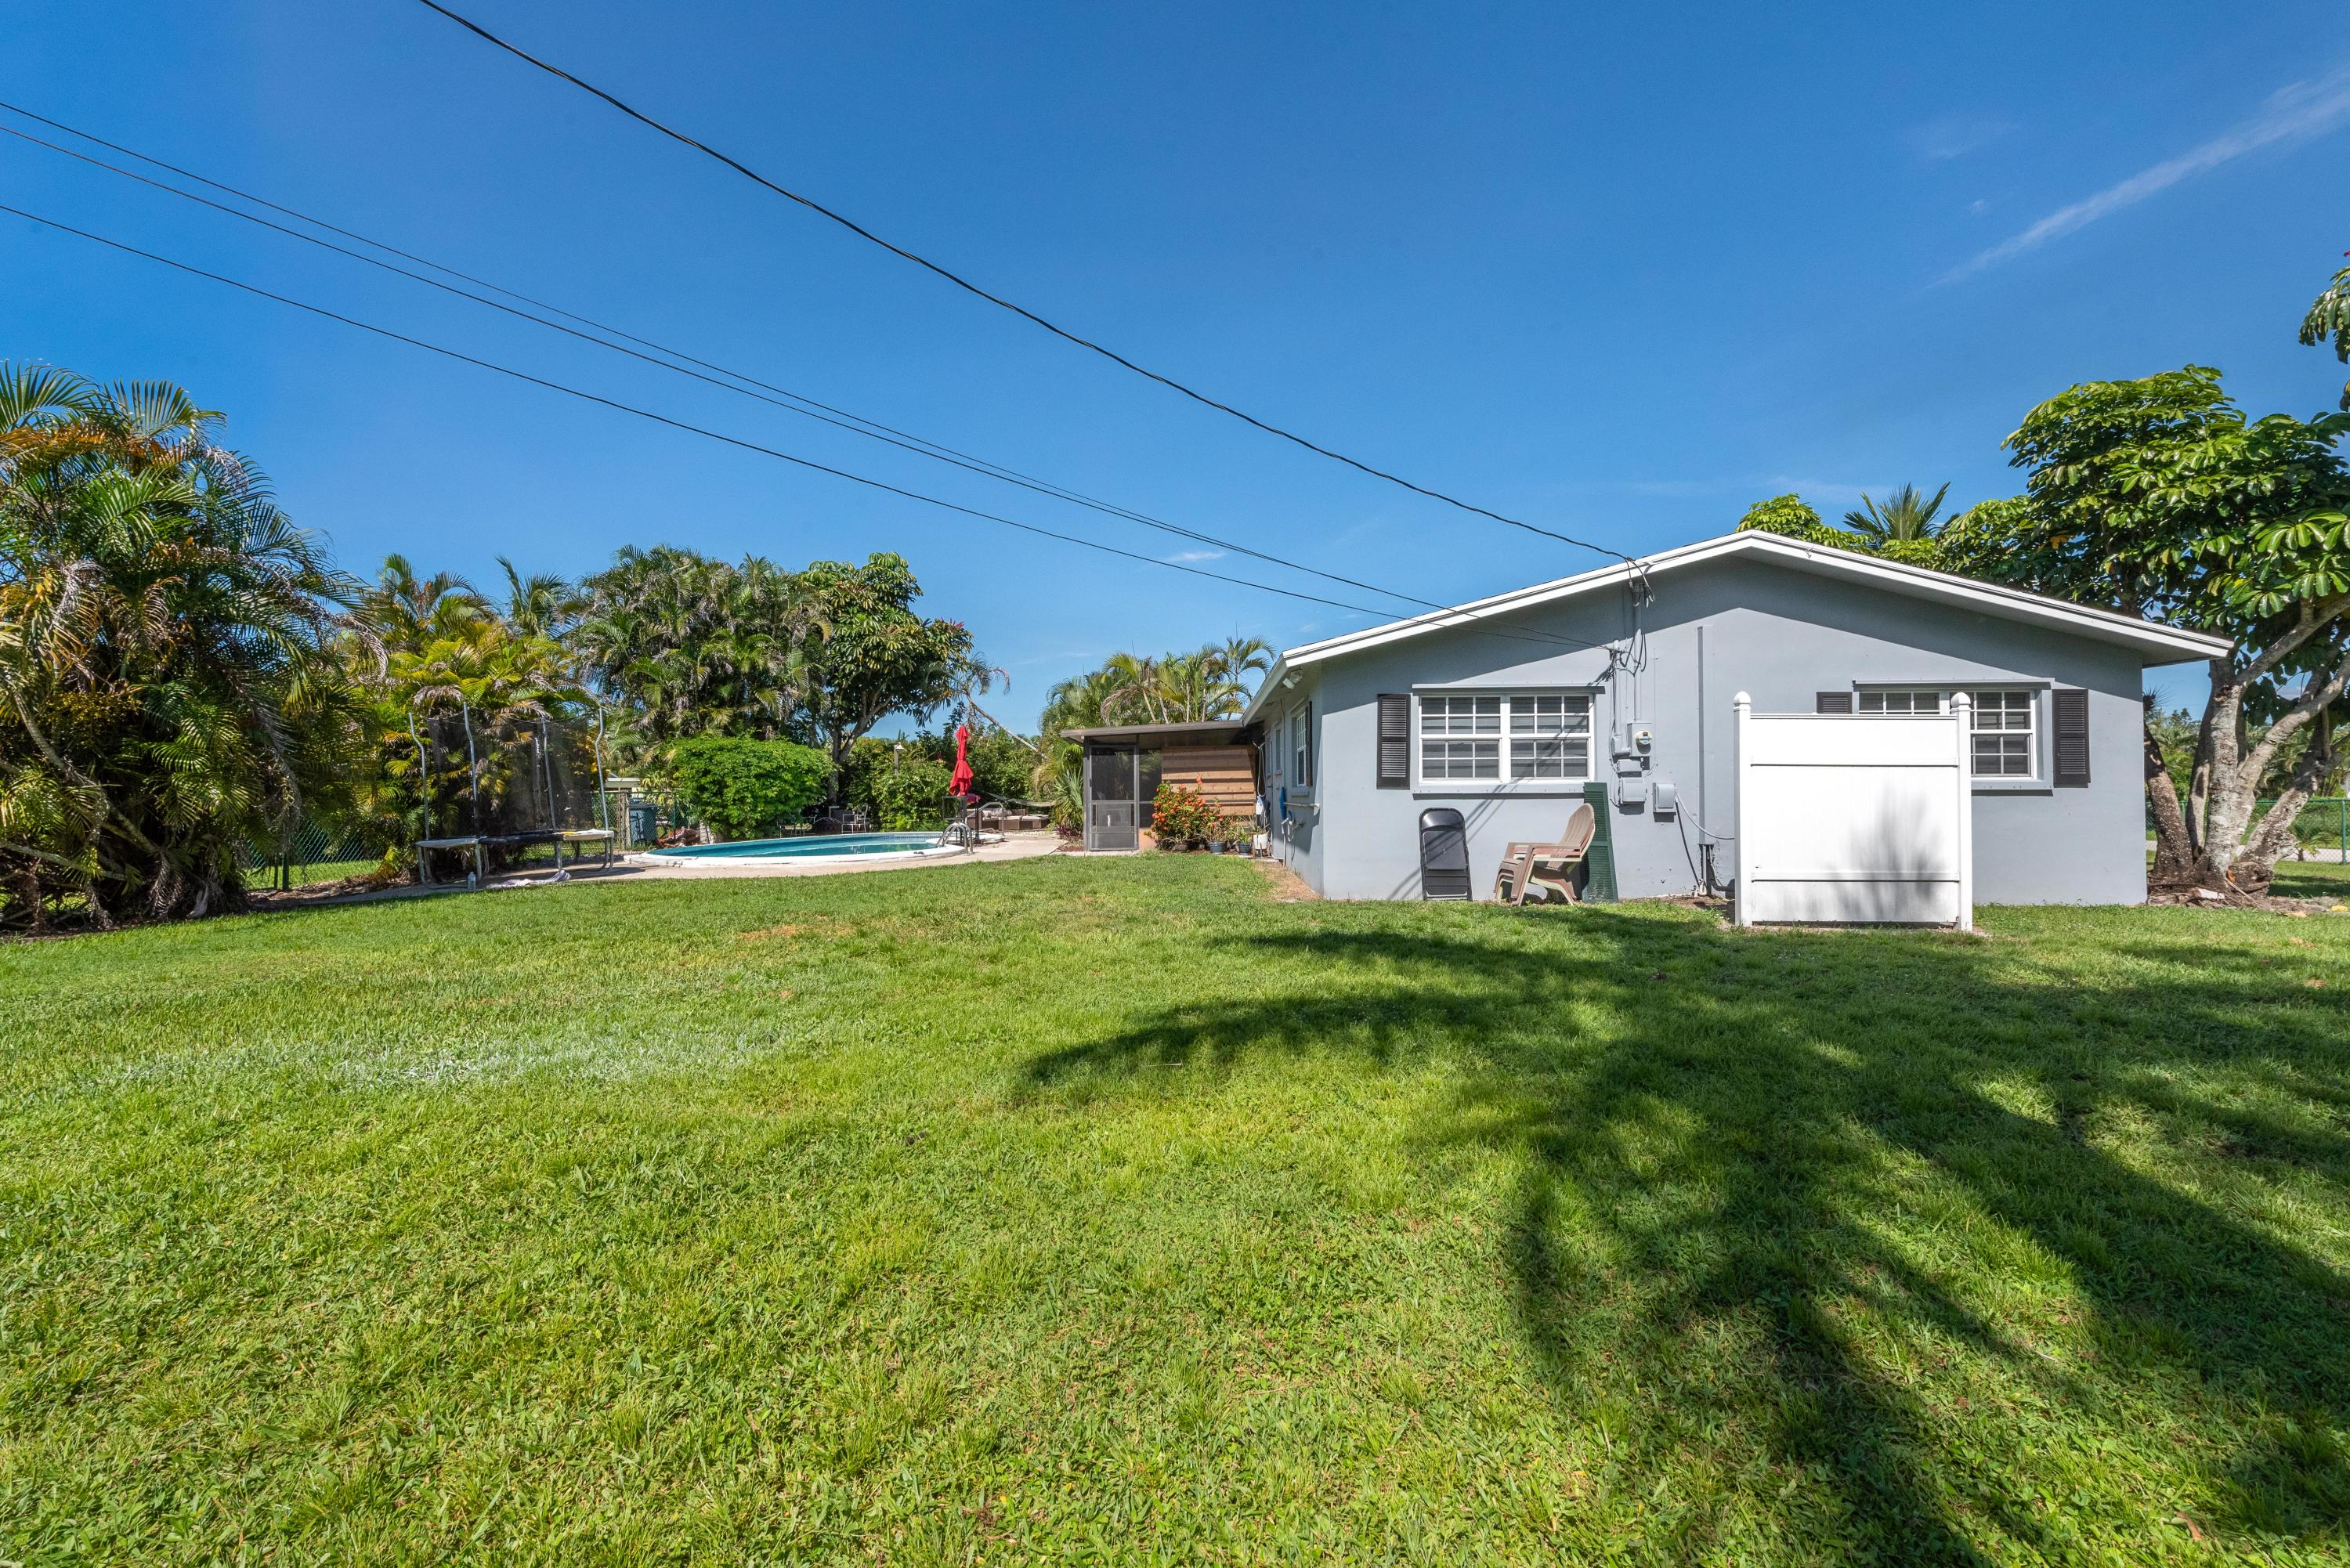 6700 Patricia Dr (29 of 36)